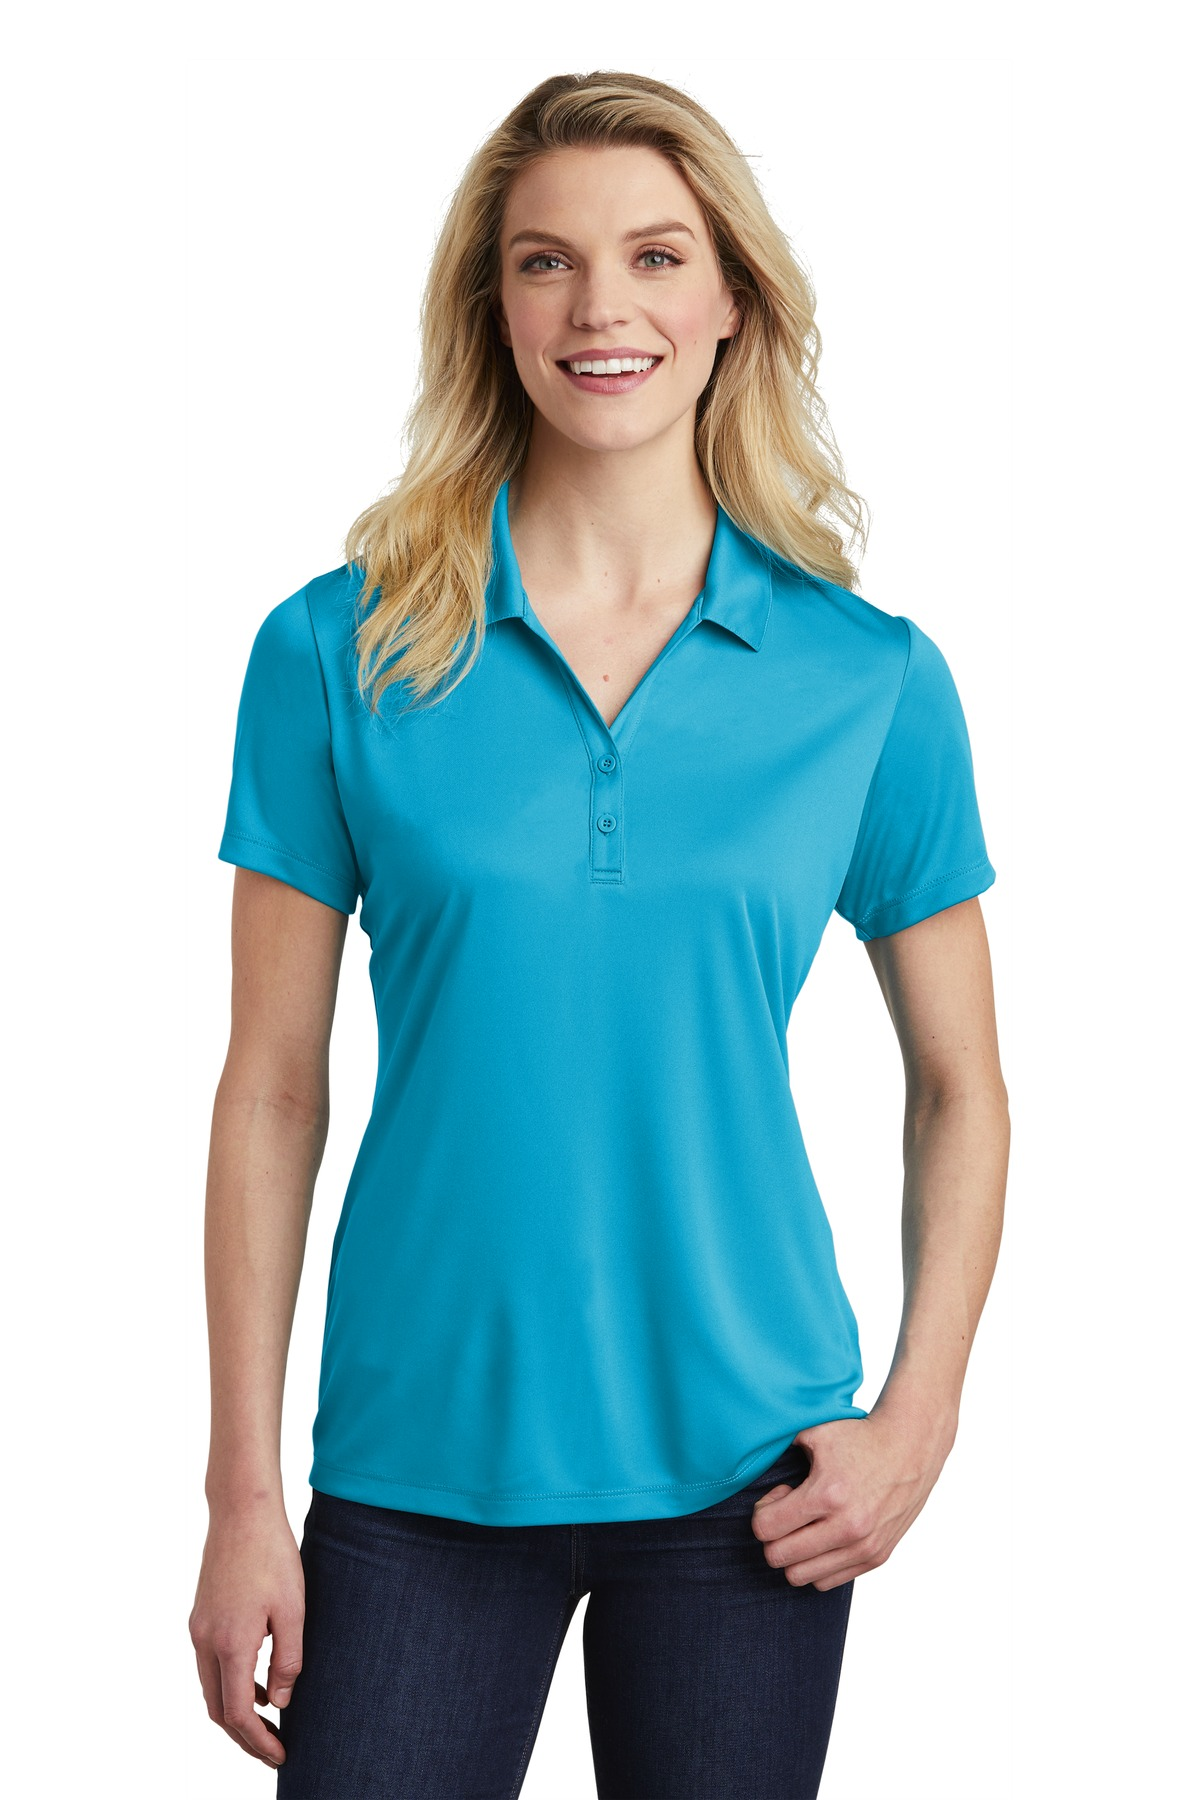 Sport-Tek  ®  Ladies PosiCharge  ®  Competitor  ™  Polo. LST550 - Atomic Blue